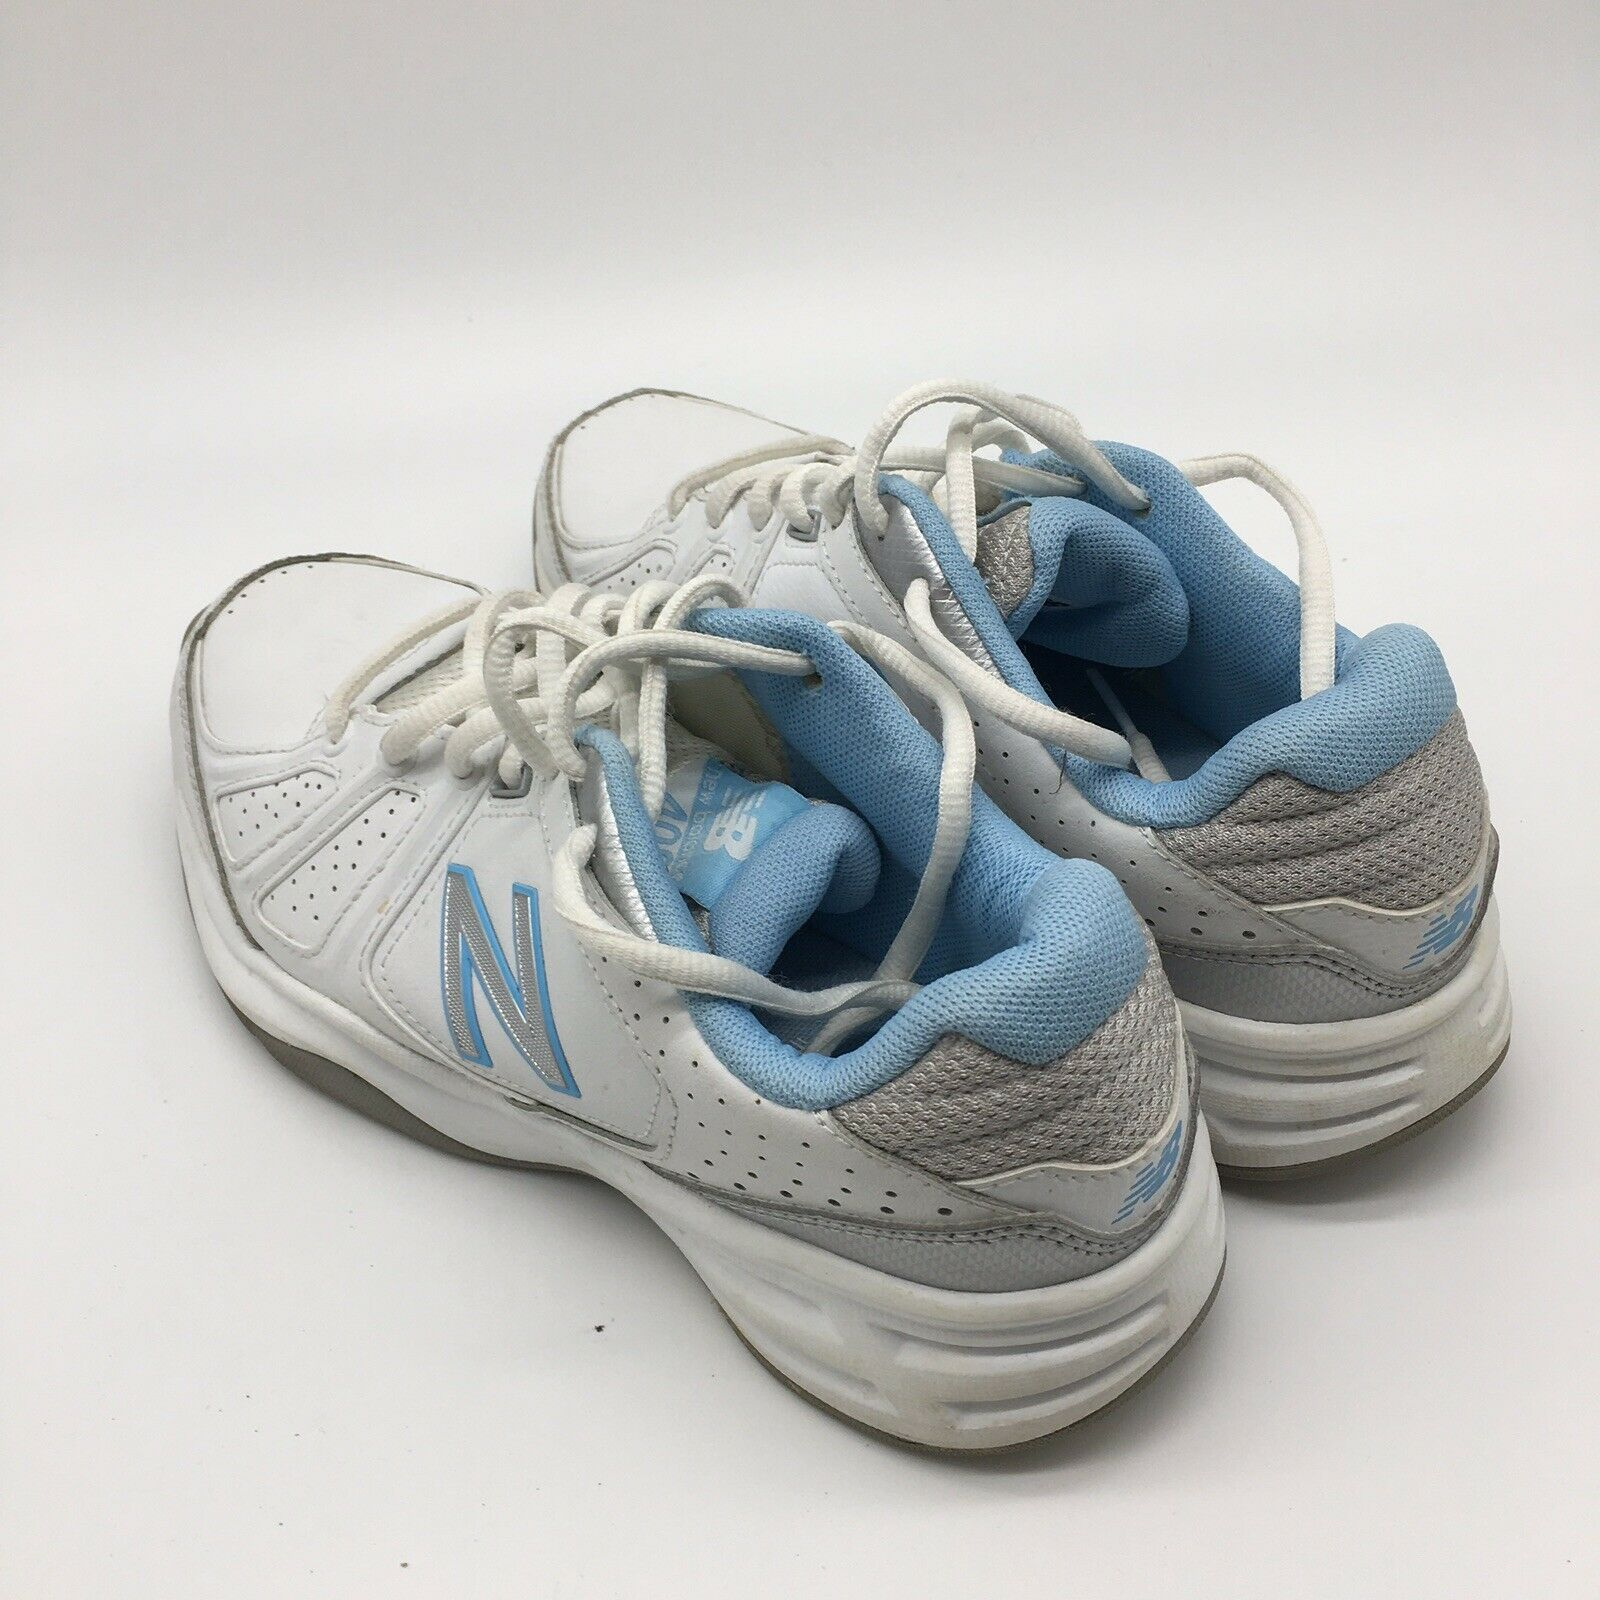 Primary image for New Balance Womens 409 Athletic Shoes, White/ Blue, Size 8.0